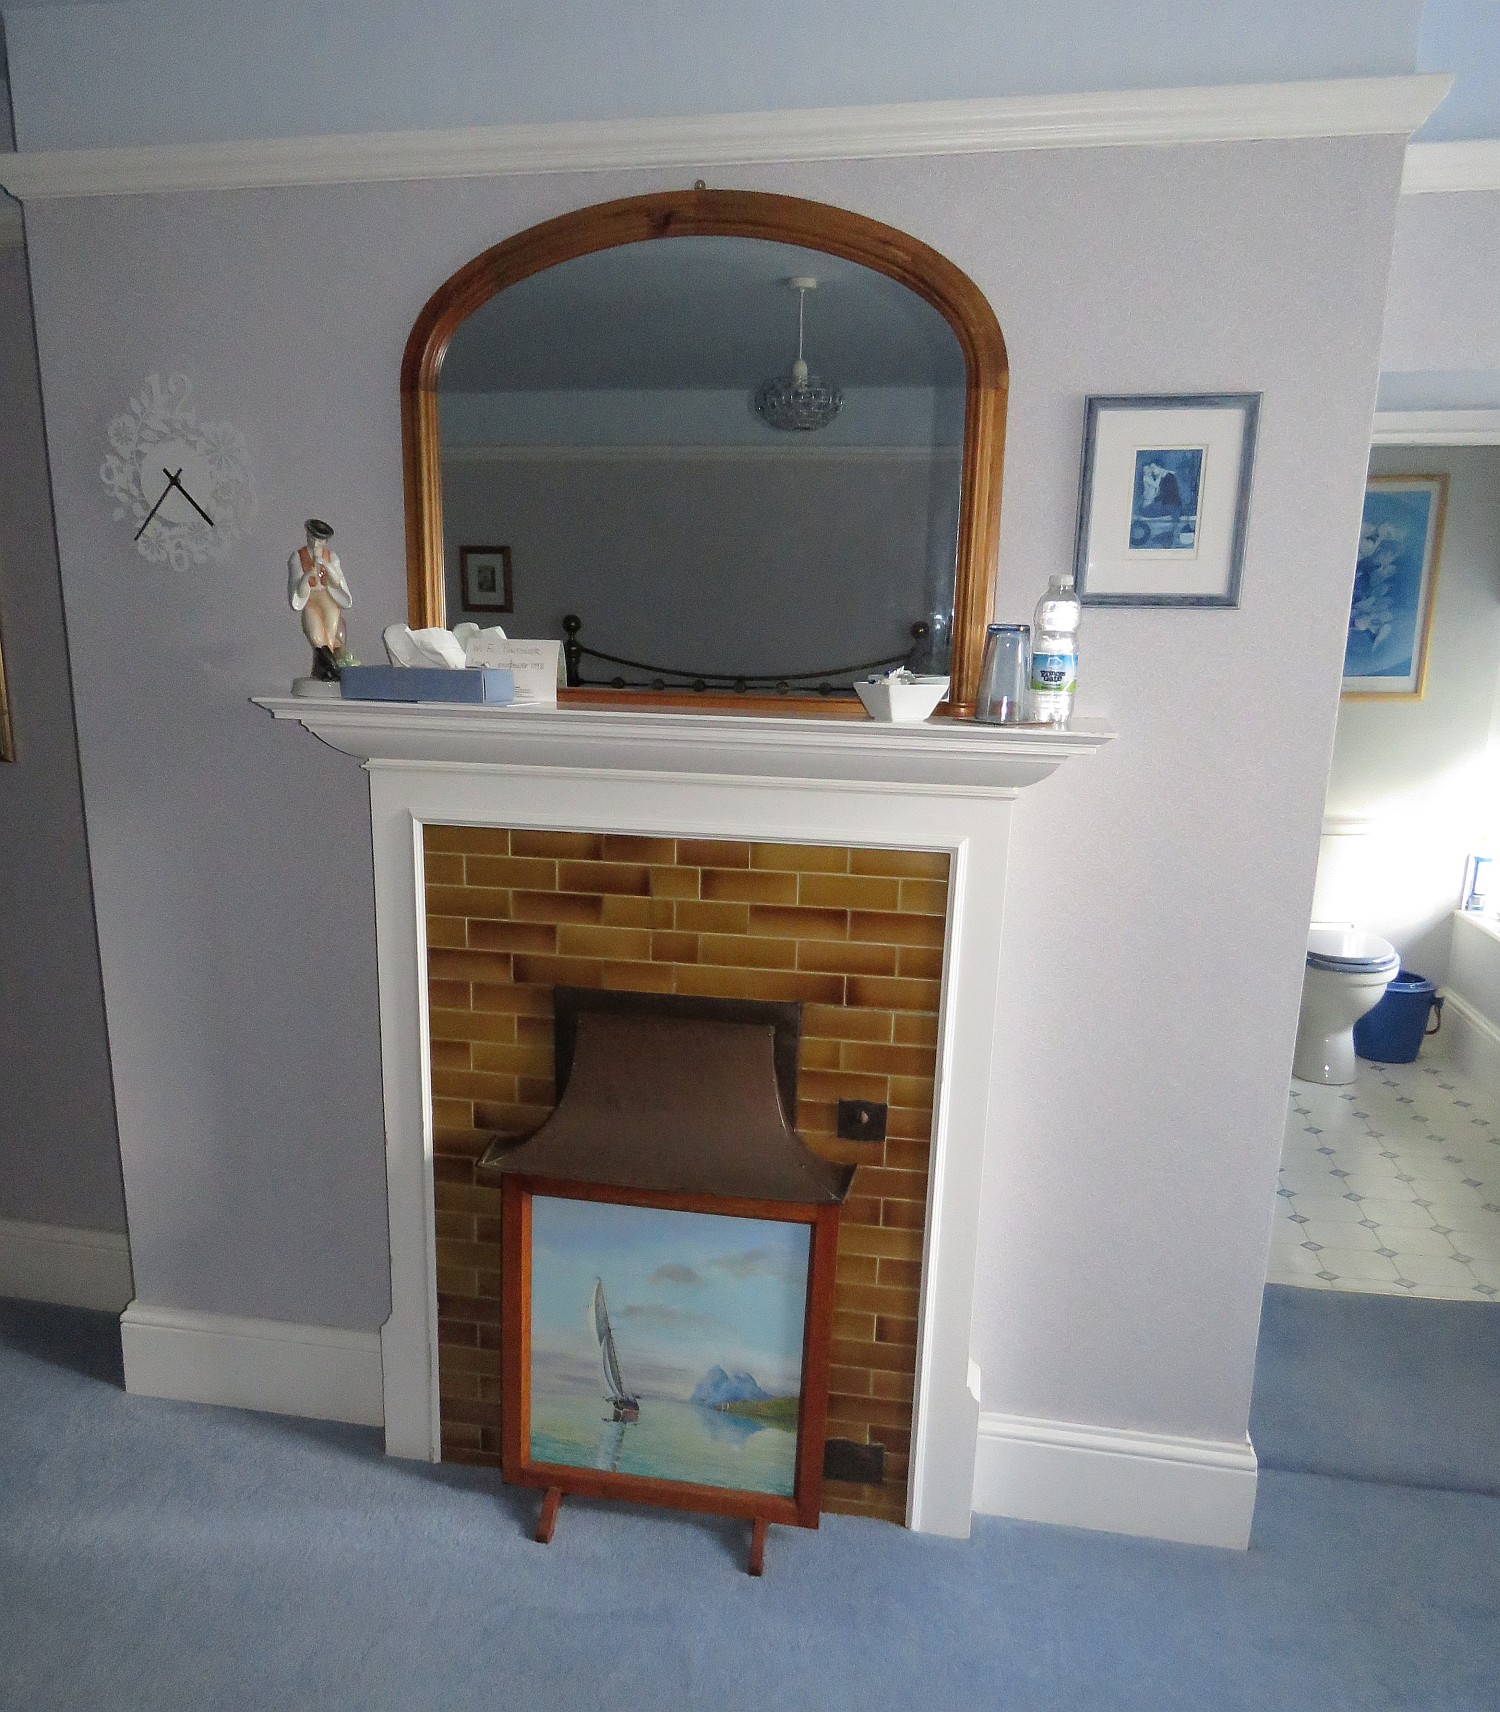 Norah's fireplace with a peek into her loo